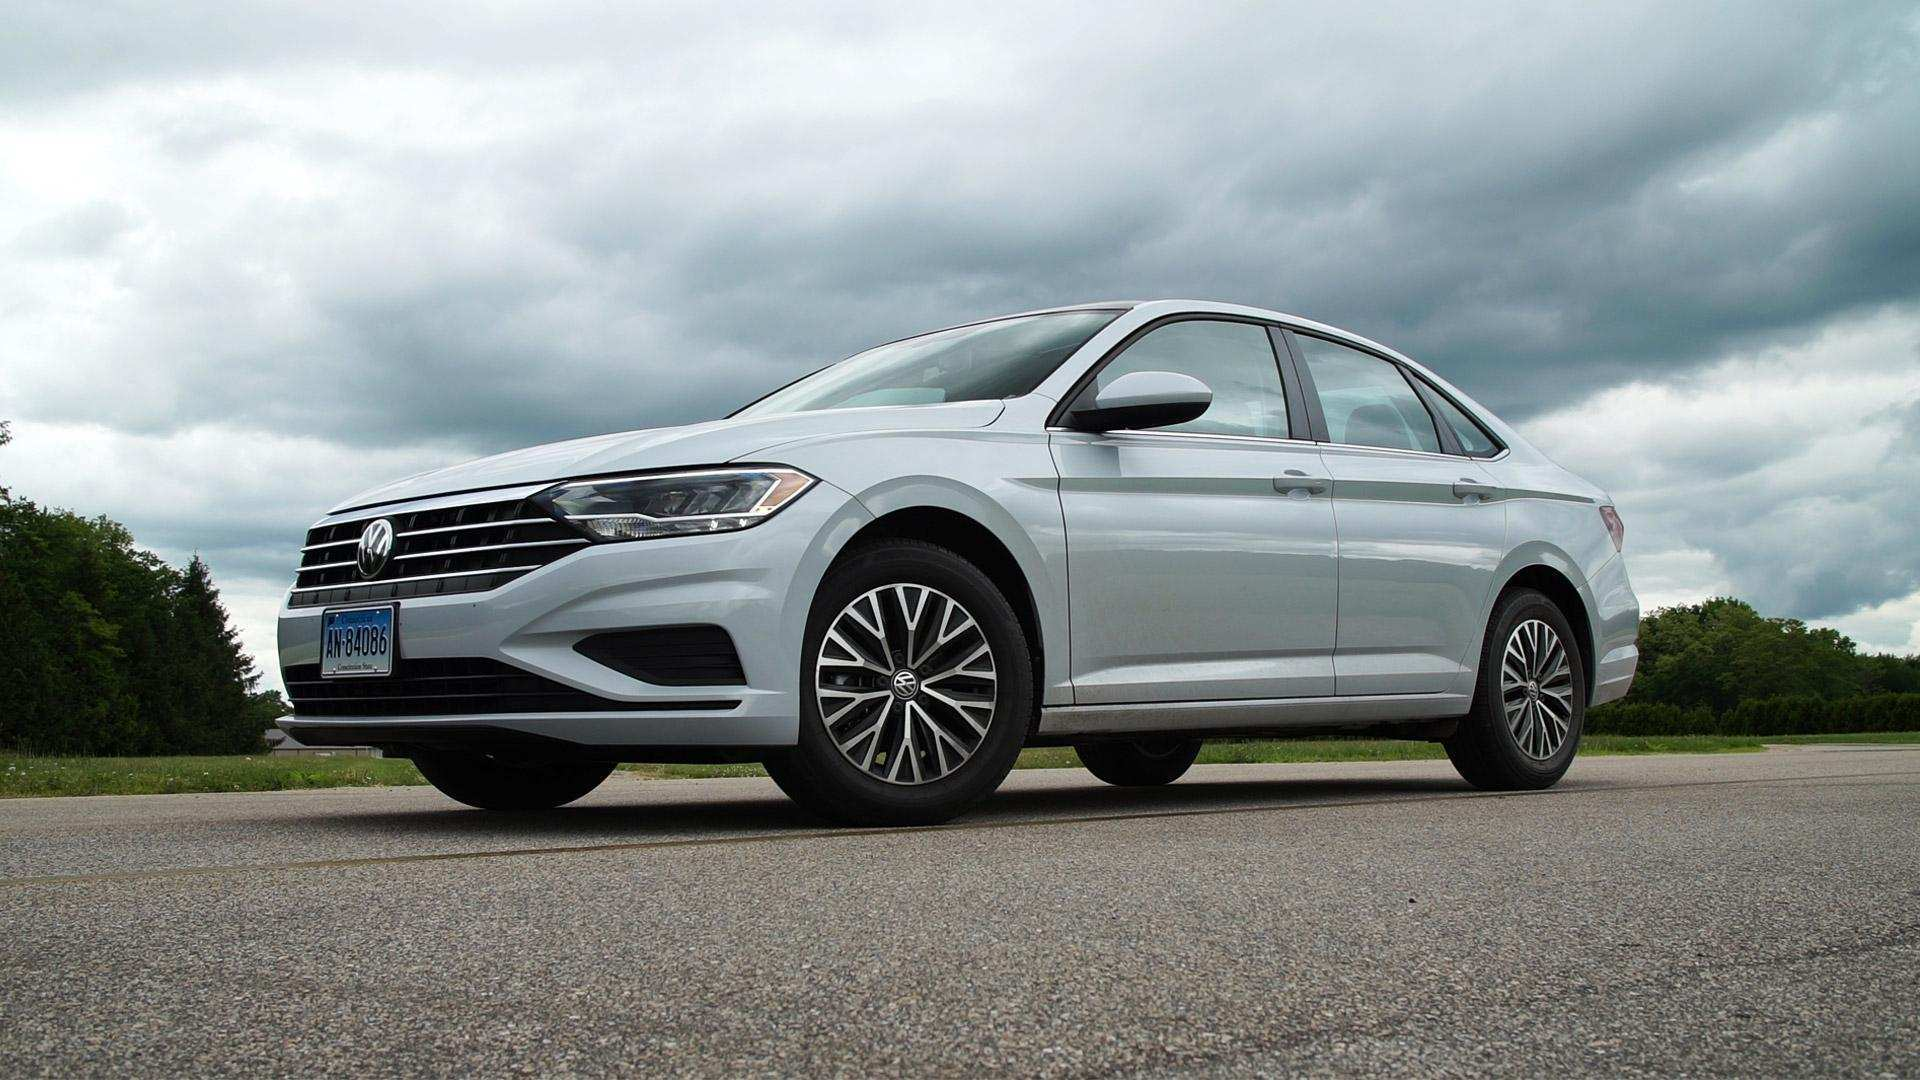 58 Great 2019 Vw Jetta Redesign First Drive with 2019 Vw Jetta Redesign